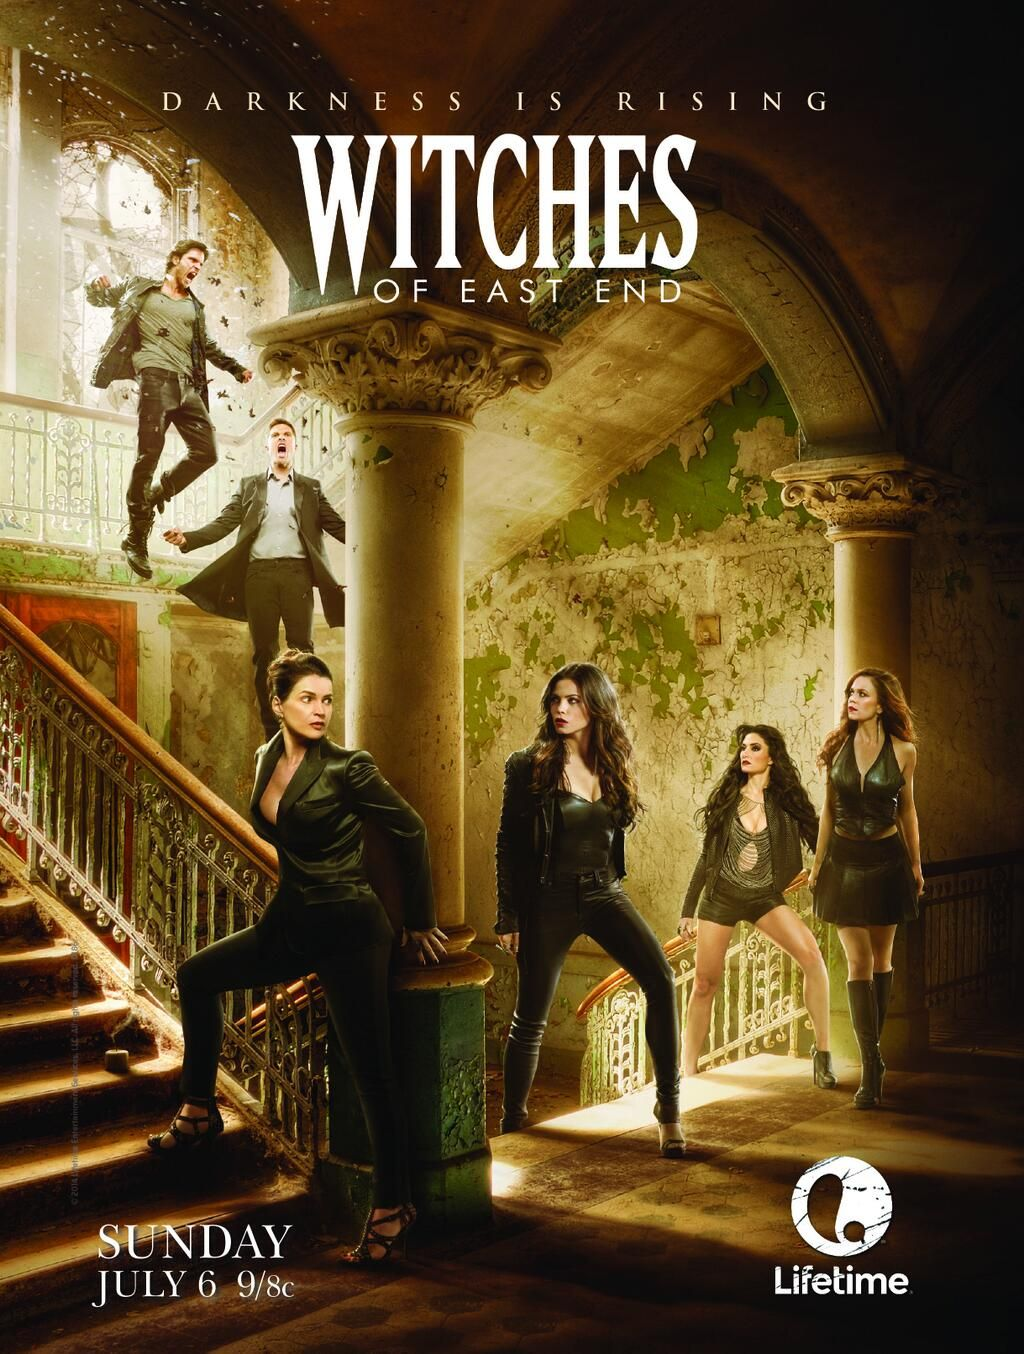 Witches Of East End Season 2 Darkness Is Rising